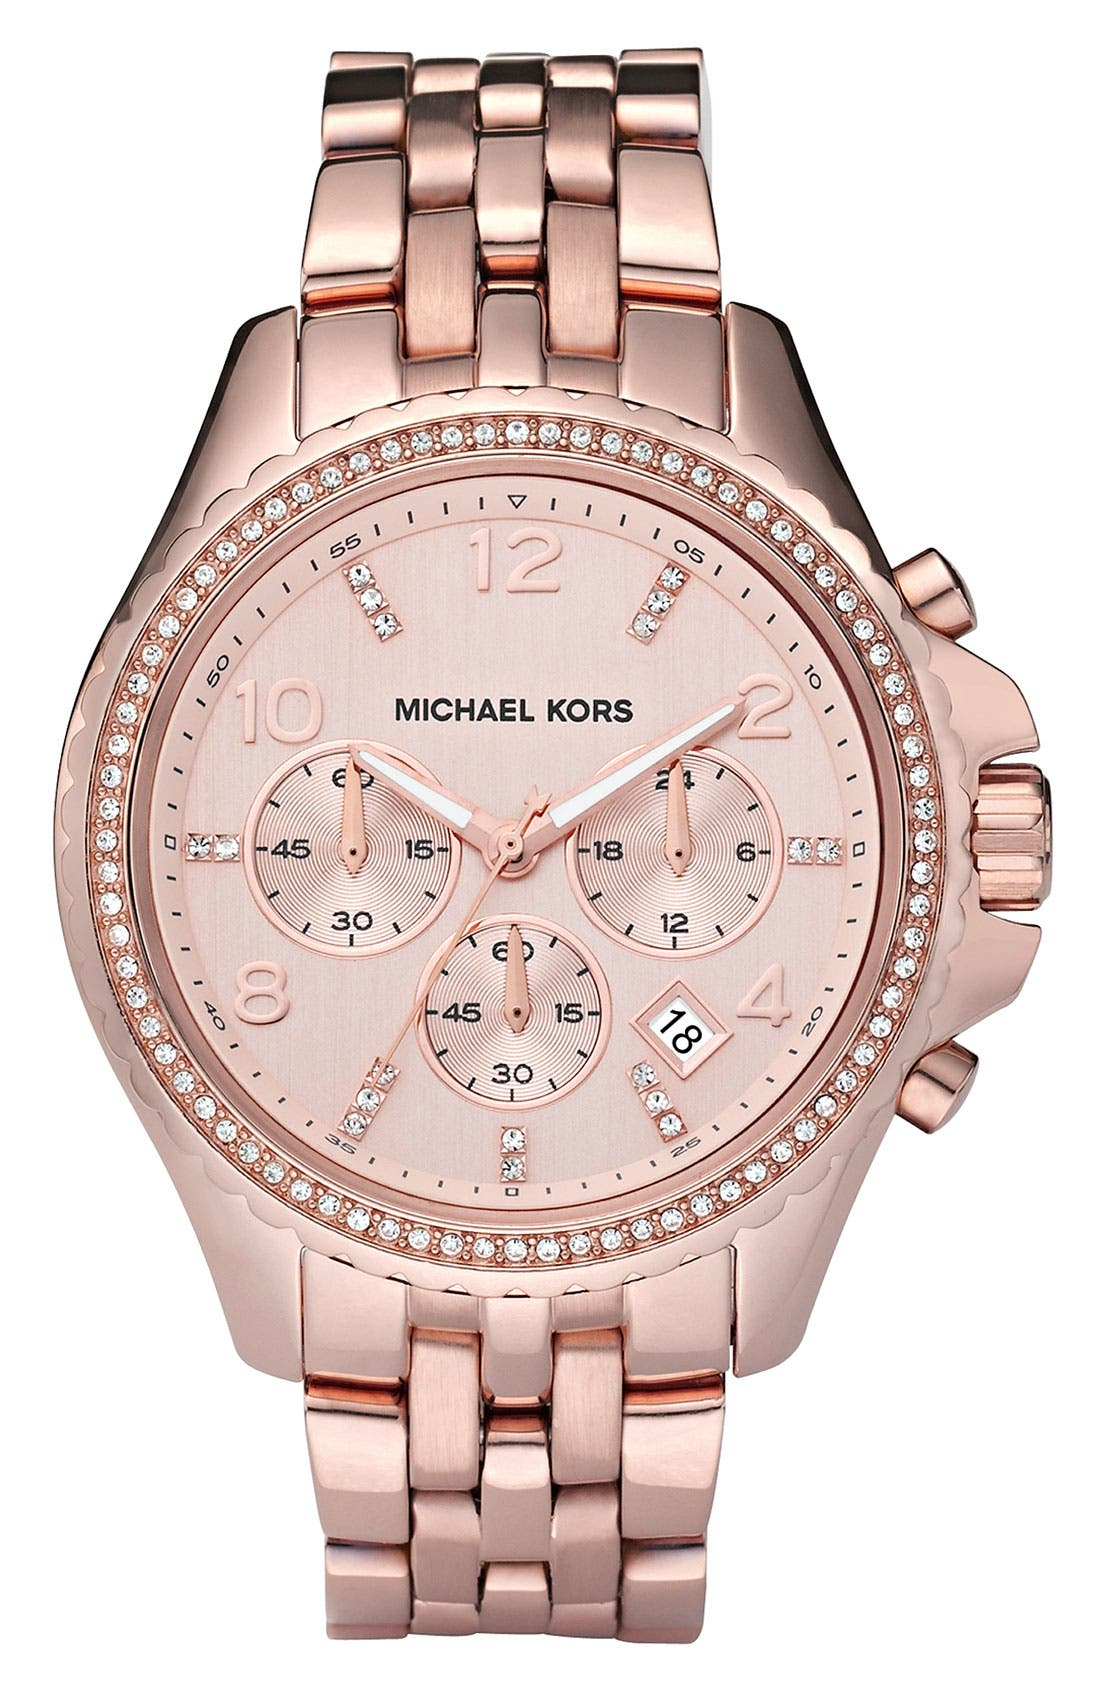 Main Image - Michael Kors 'Pilot' Watch